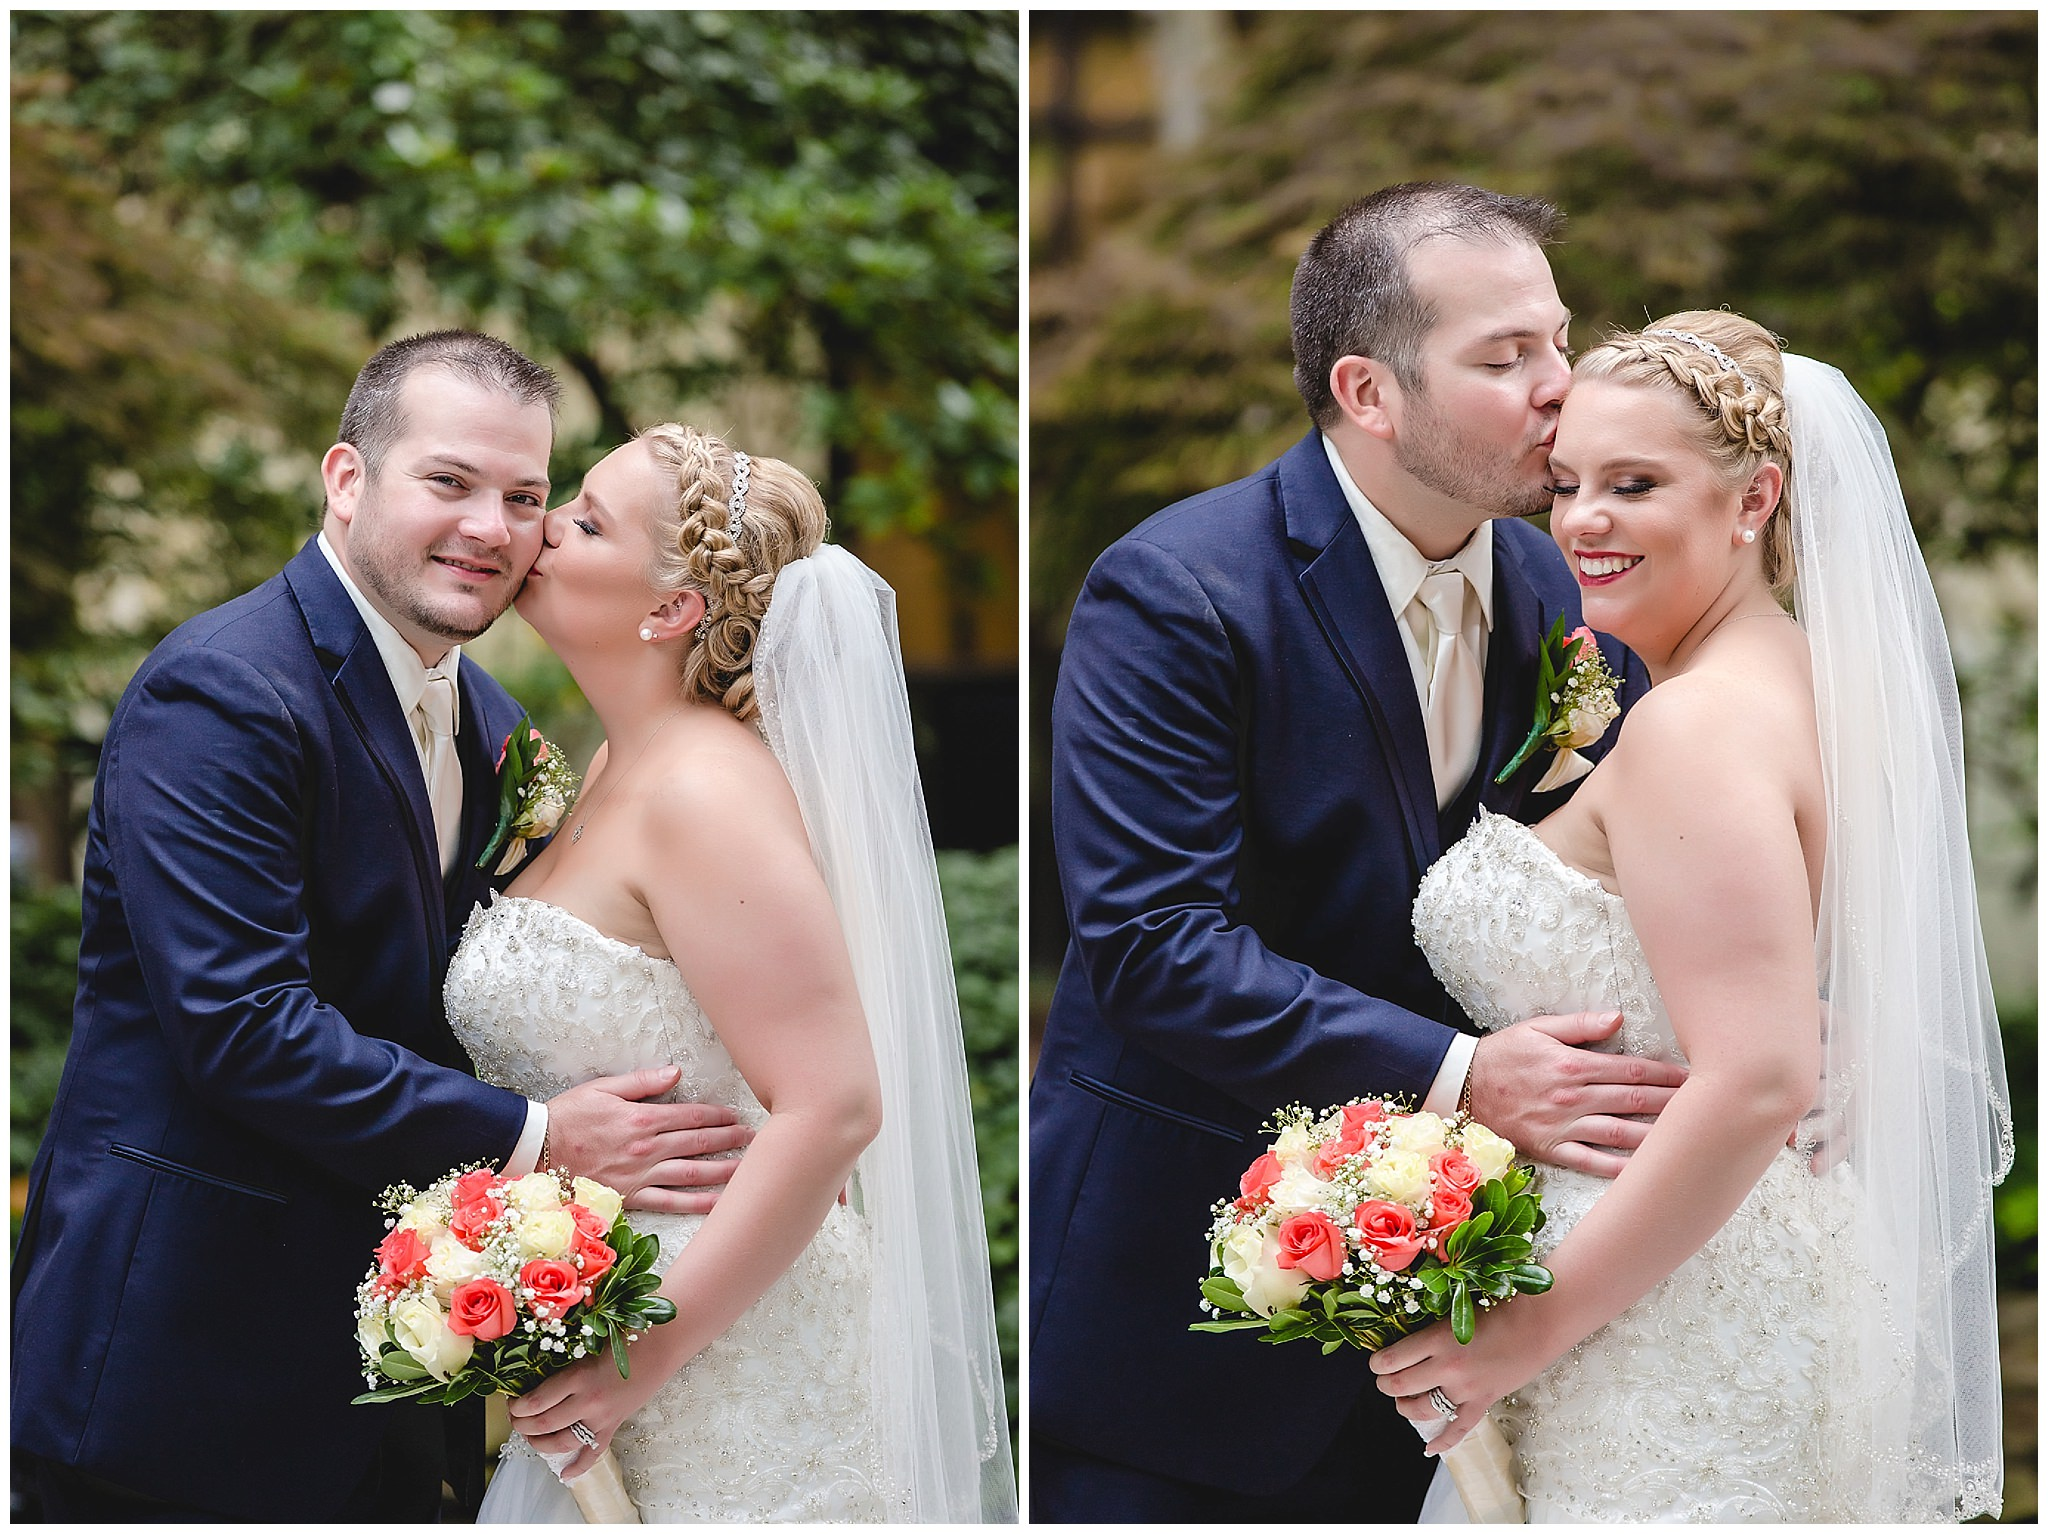 Bride and groom give each other kisses in the courtyard of the Pittsburgh Airport Marriott